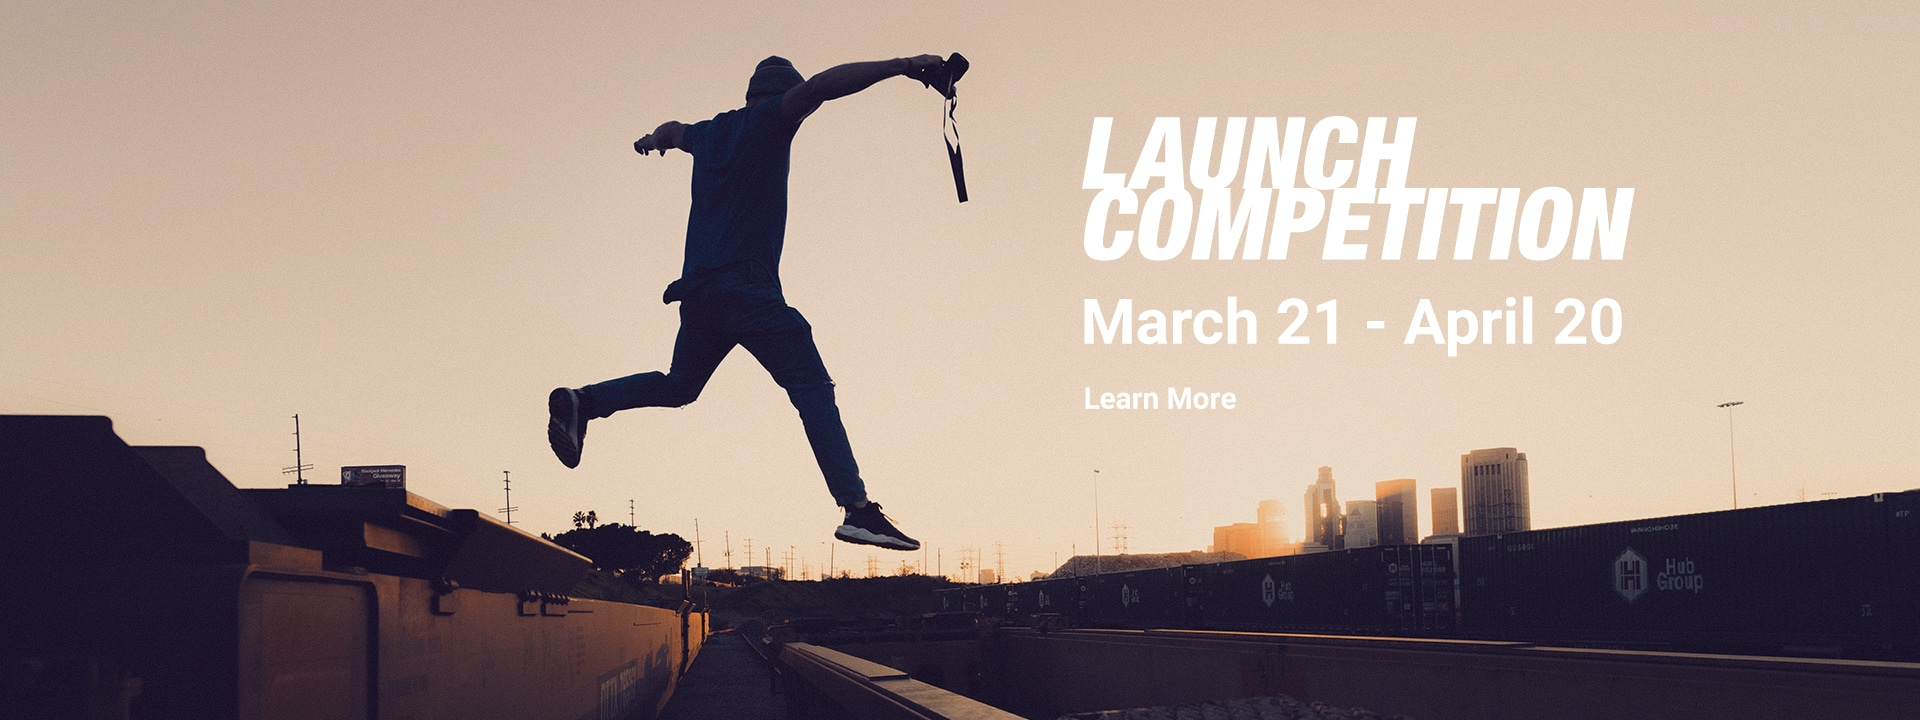 Launch Competition March 21 - April 20